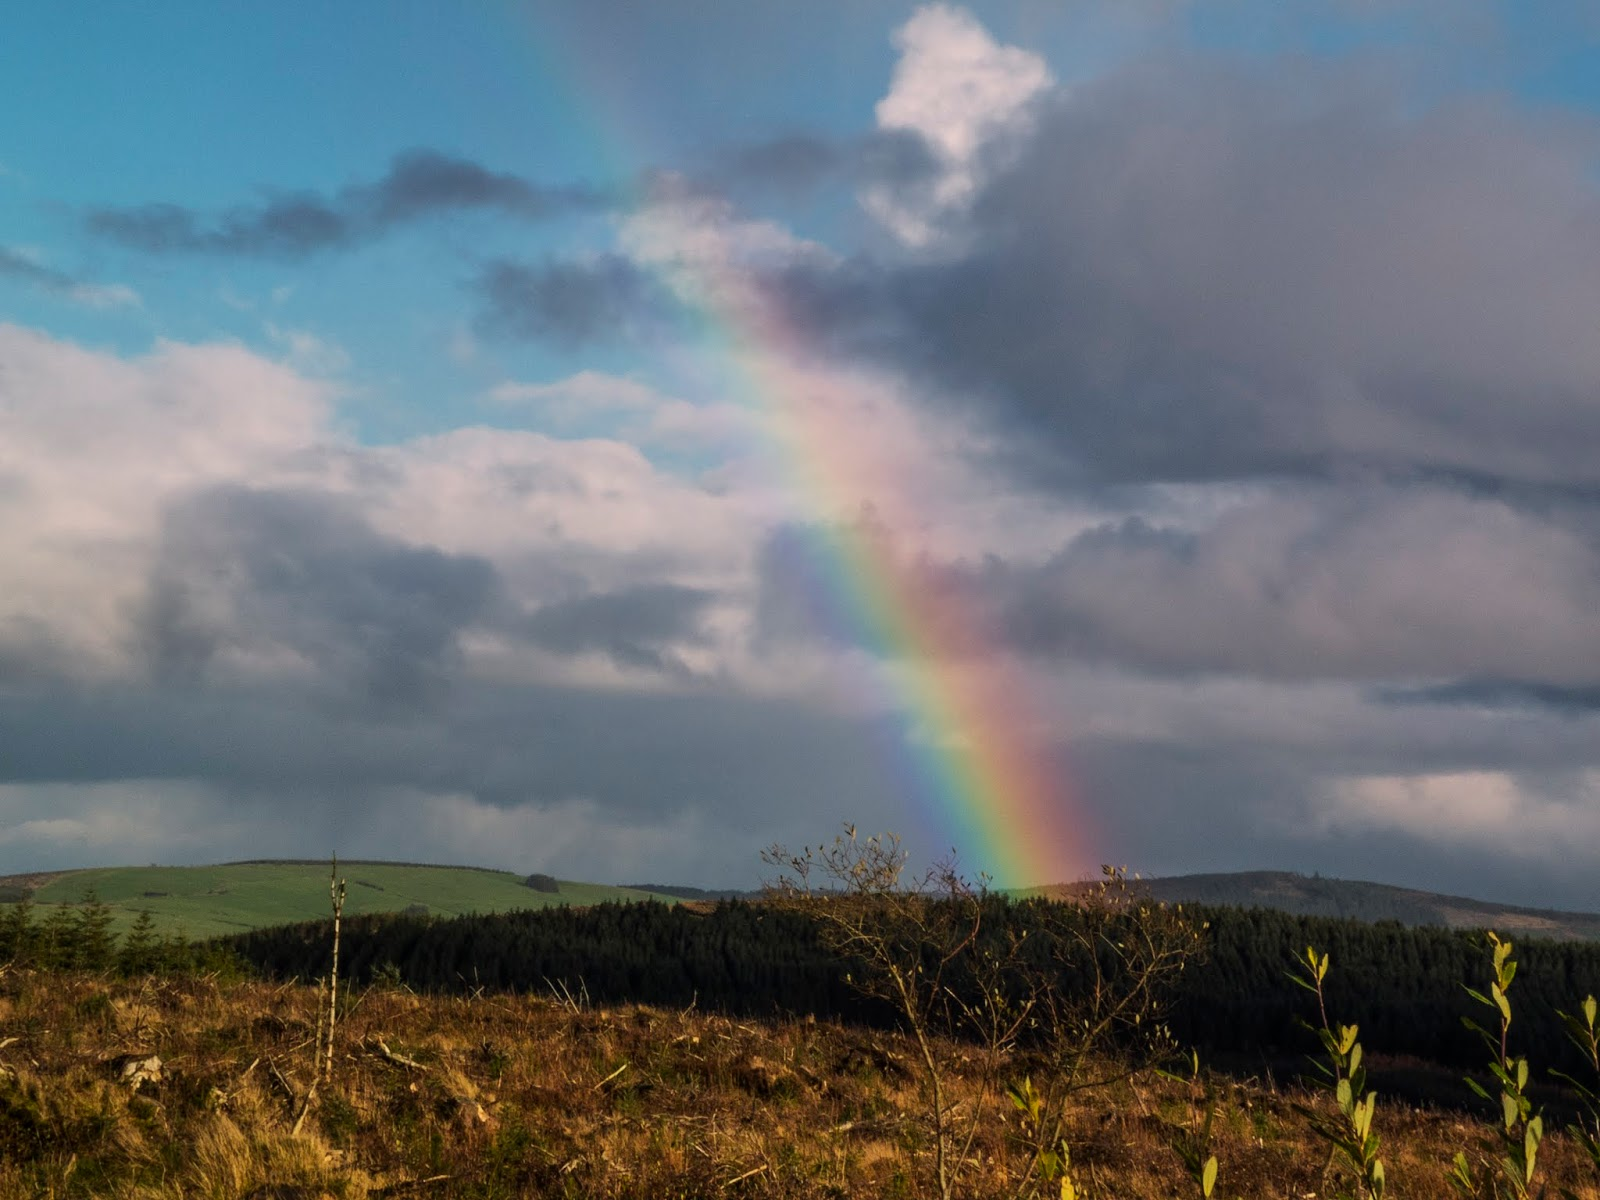 A rainbow streak in the cloudy sky over the Boggeragh Mountains in County Cork.